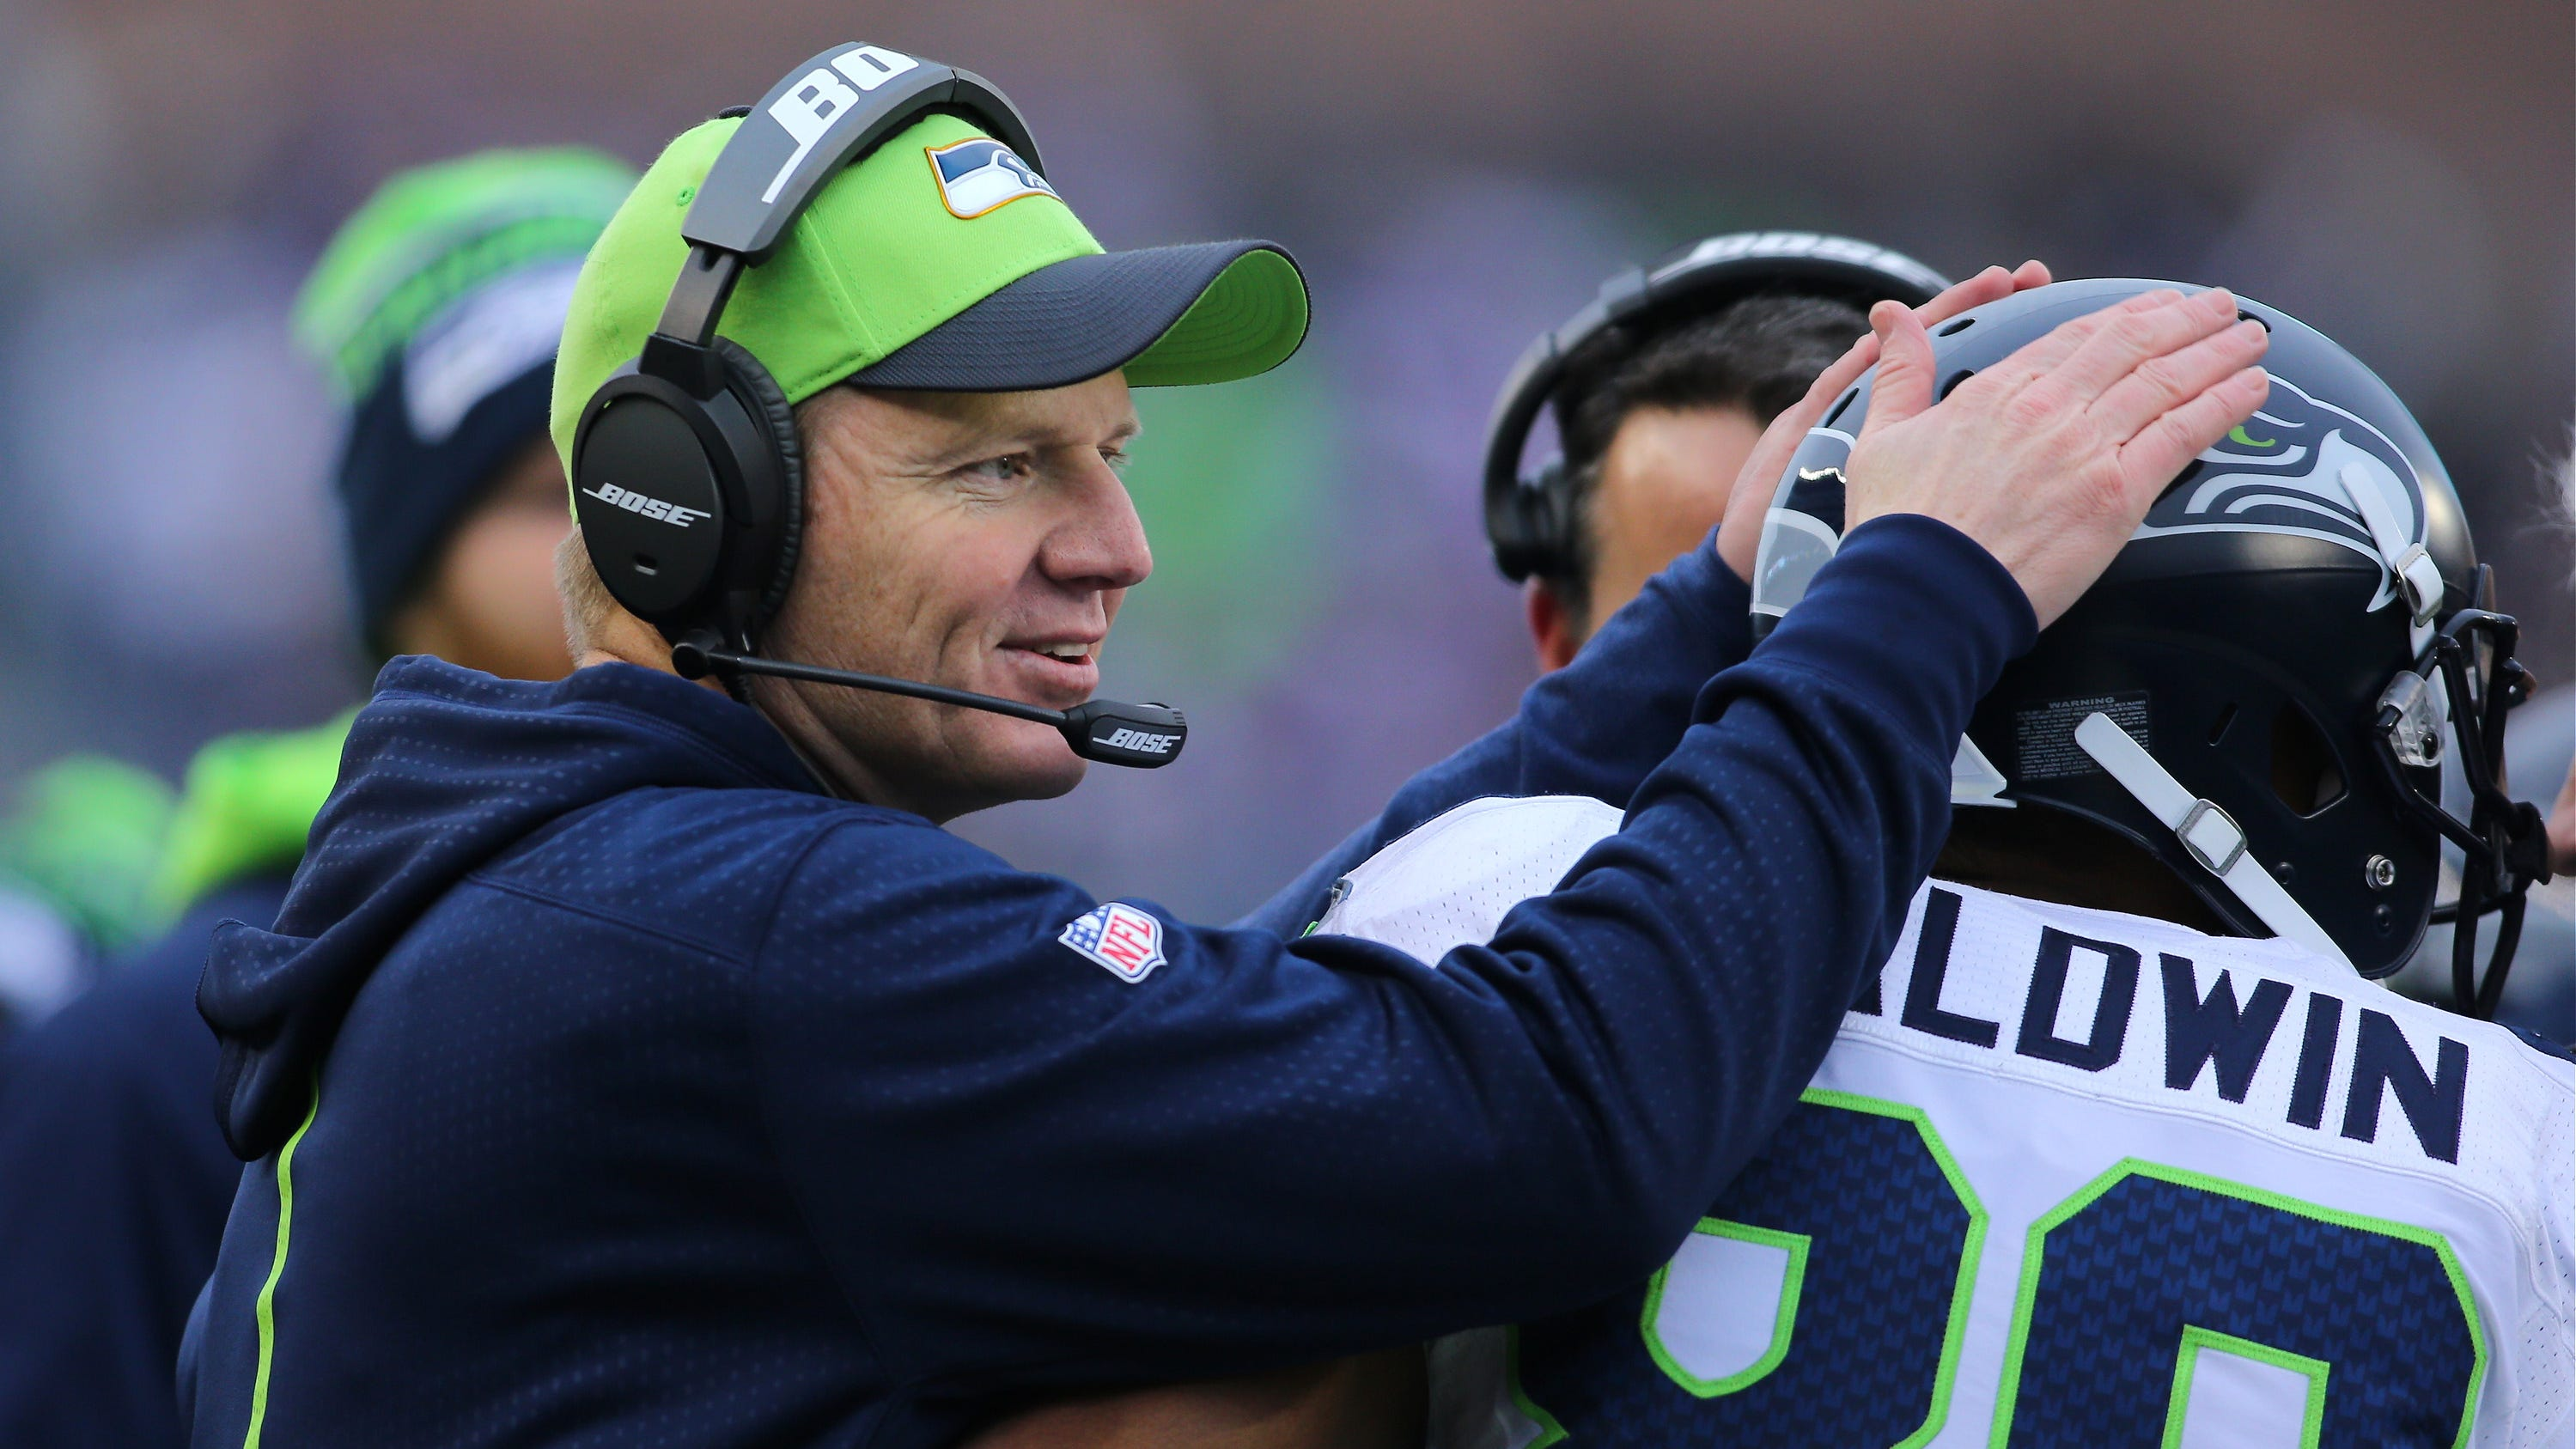 The Lions are hoping new offensive coordinator Darrell Bevell can jump-start an offense that ranked 23rd in rushing last season.